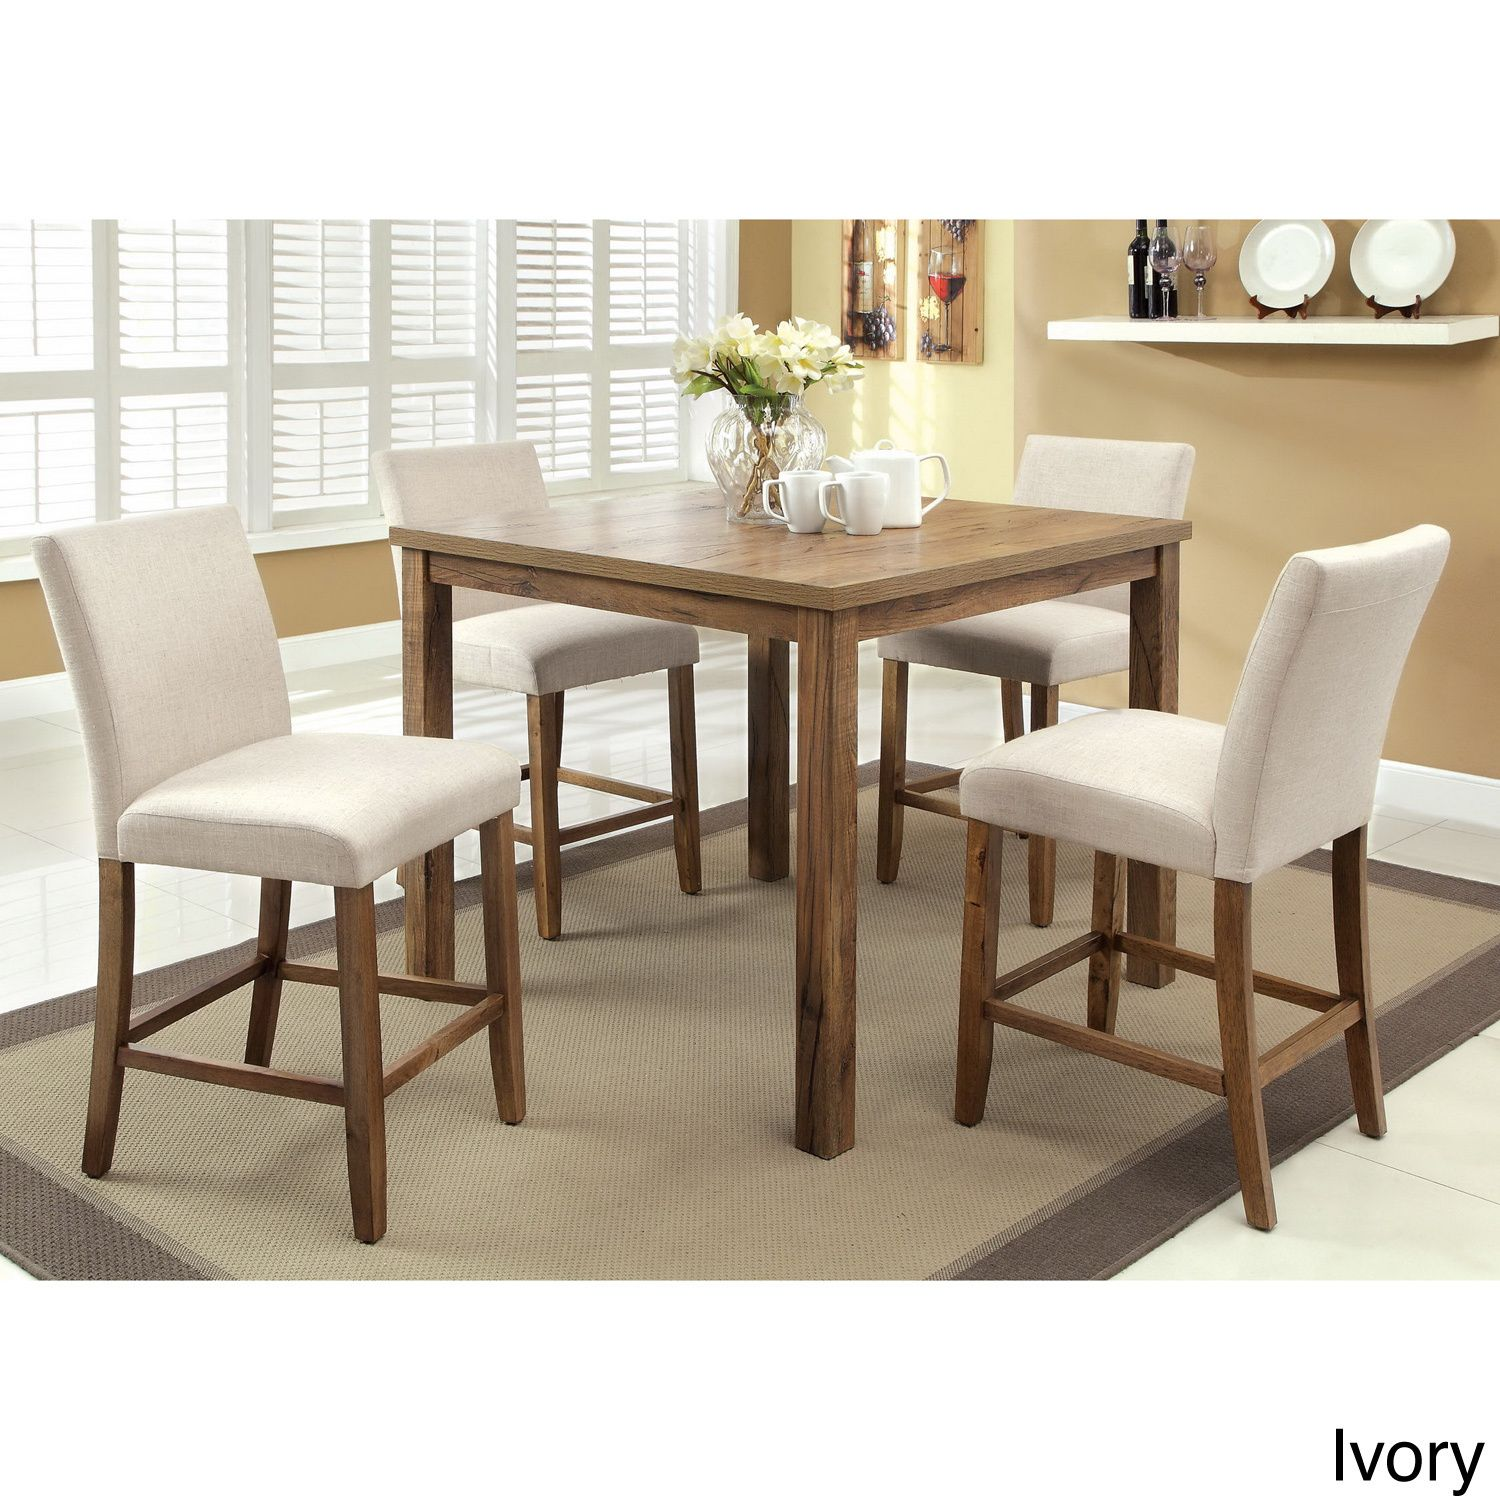 Furniture Of America Seline Weathered Elm Table Counter Height Dining Set    Overstock™ Shopping   Big Discounts On Furniture Of America Dining Sets